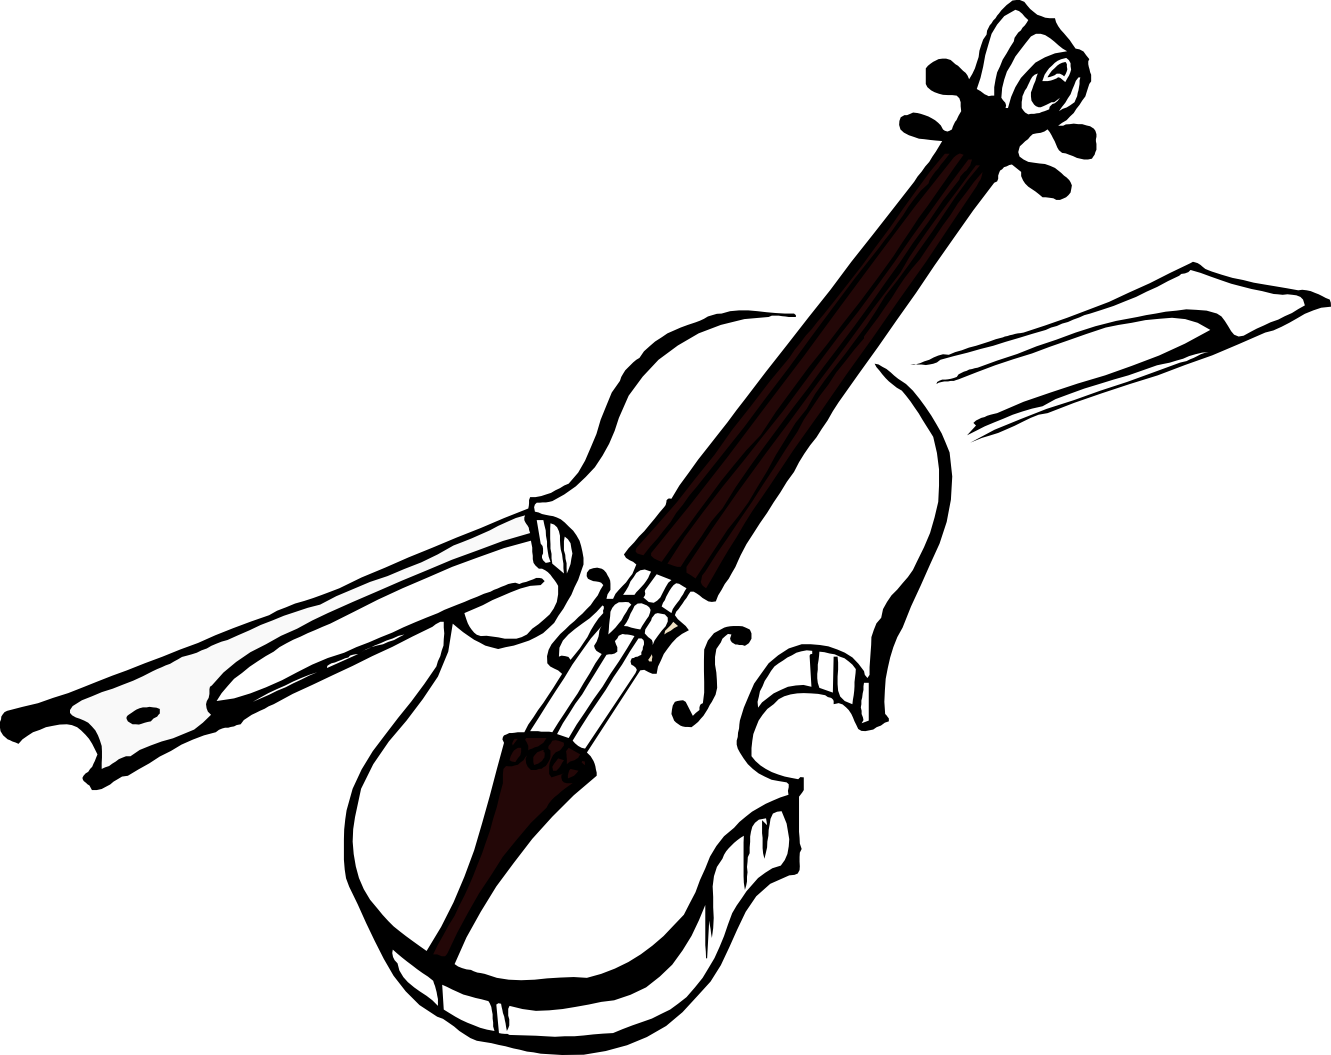 clipart library Musical instrument clipart black and white. Violin clip art transprent